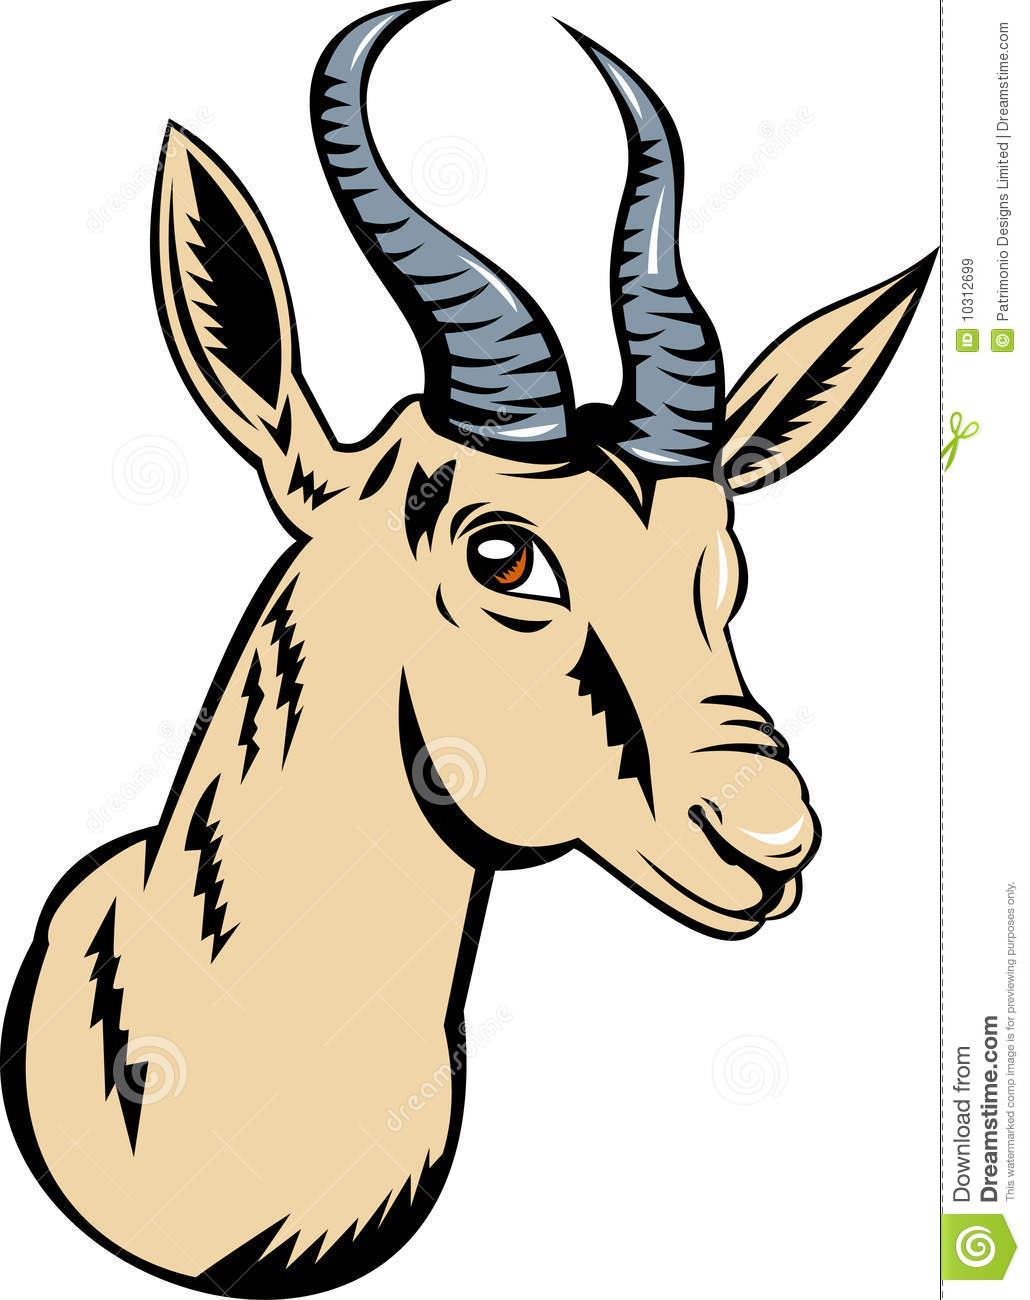 clipart springbok - photo #10